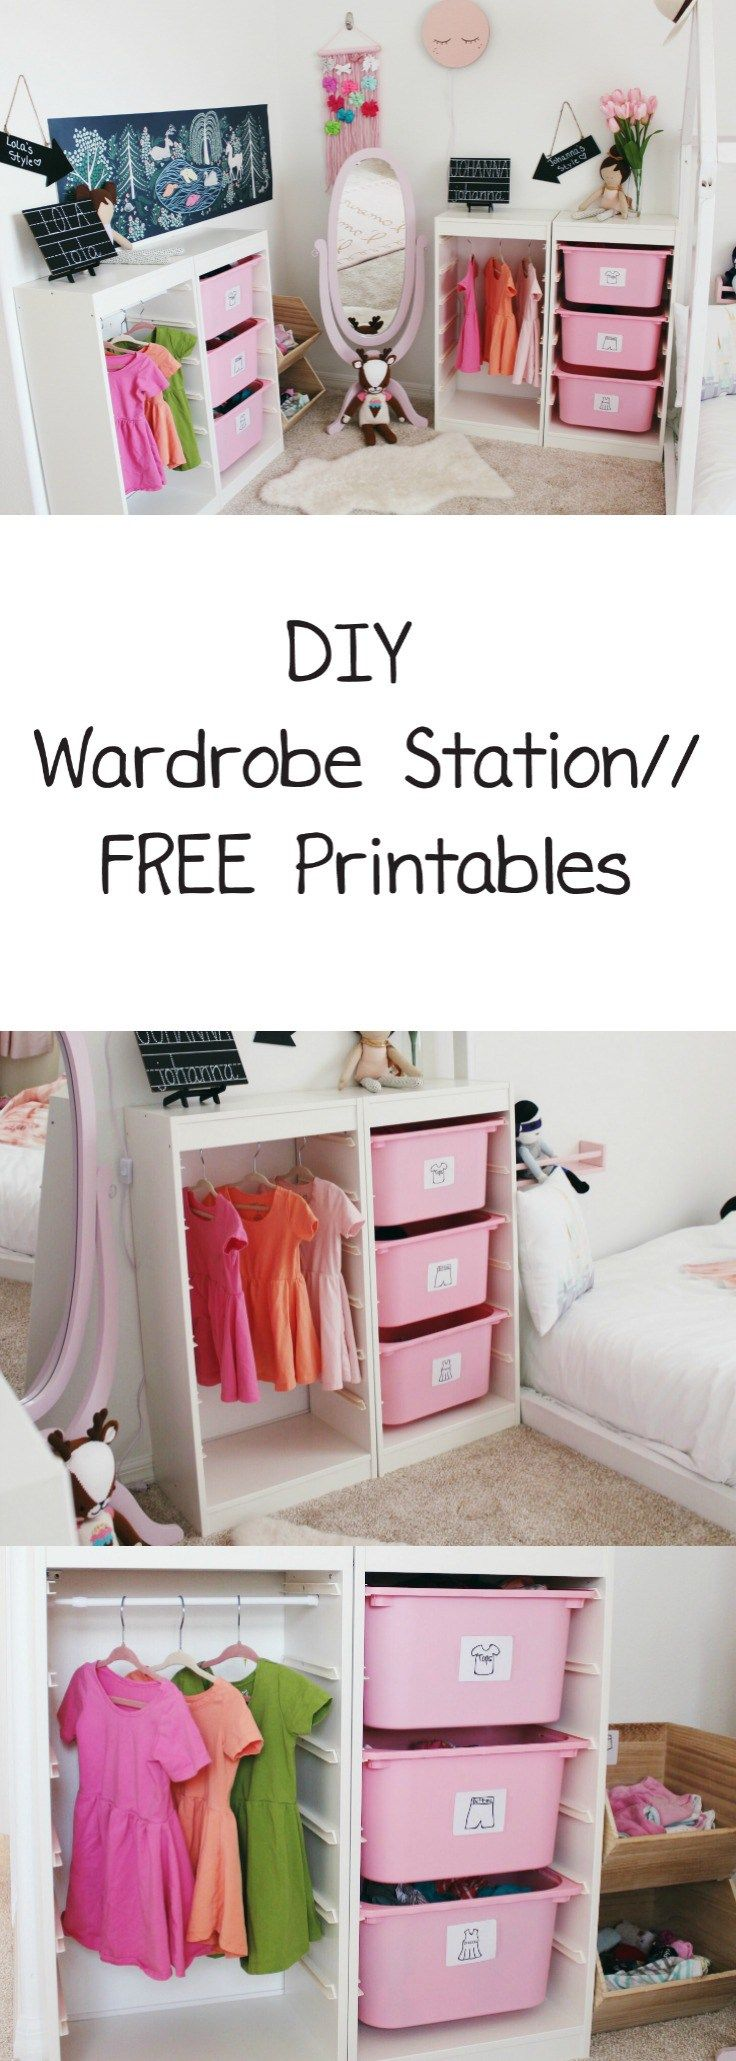 FREE PRINTABLE - Organize Your Child's Clothes With This DIY Wardrobe Station / Montessori wardrobe, ikea hack, trofast hack, life hacks, mom life hacks, toddler clothing organization, organize toddler clothes, how to organize toddler clothes, how to organize children's clothes, shared bedroom clothing organization, children's wardrobe station, dress up station, clothing organization for kids, free clothing prinatbles, DIY clothing station for kids, print outs clothes